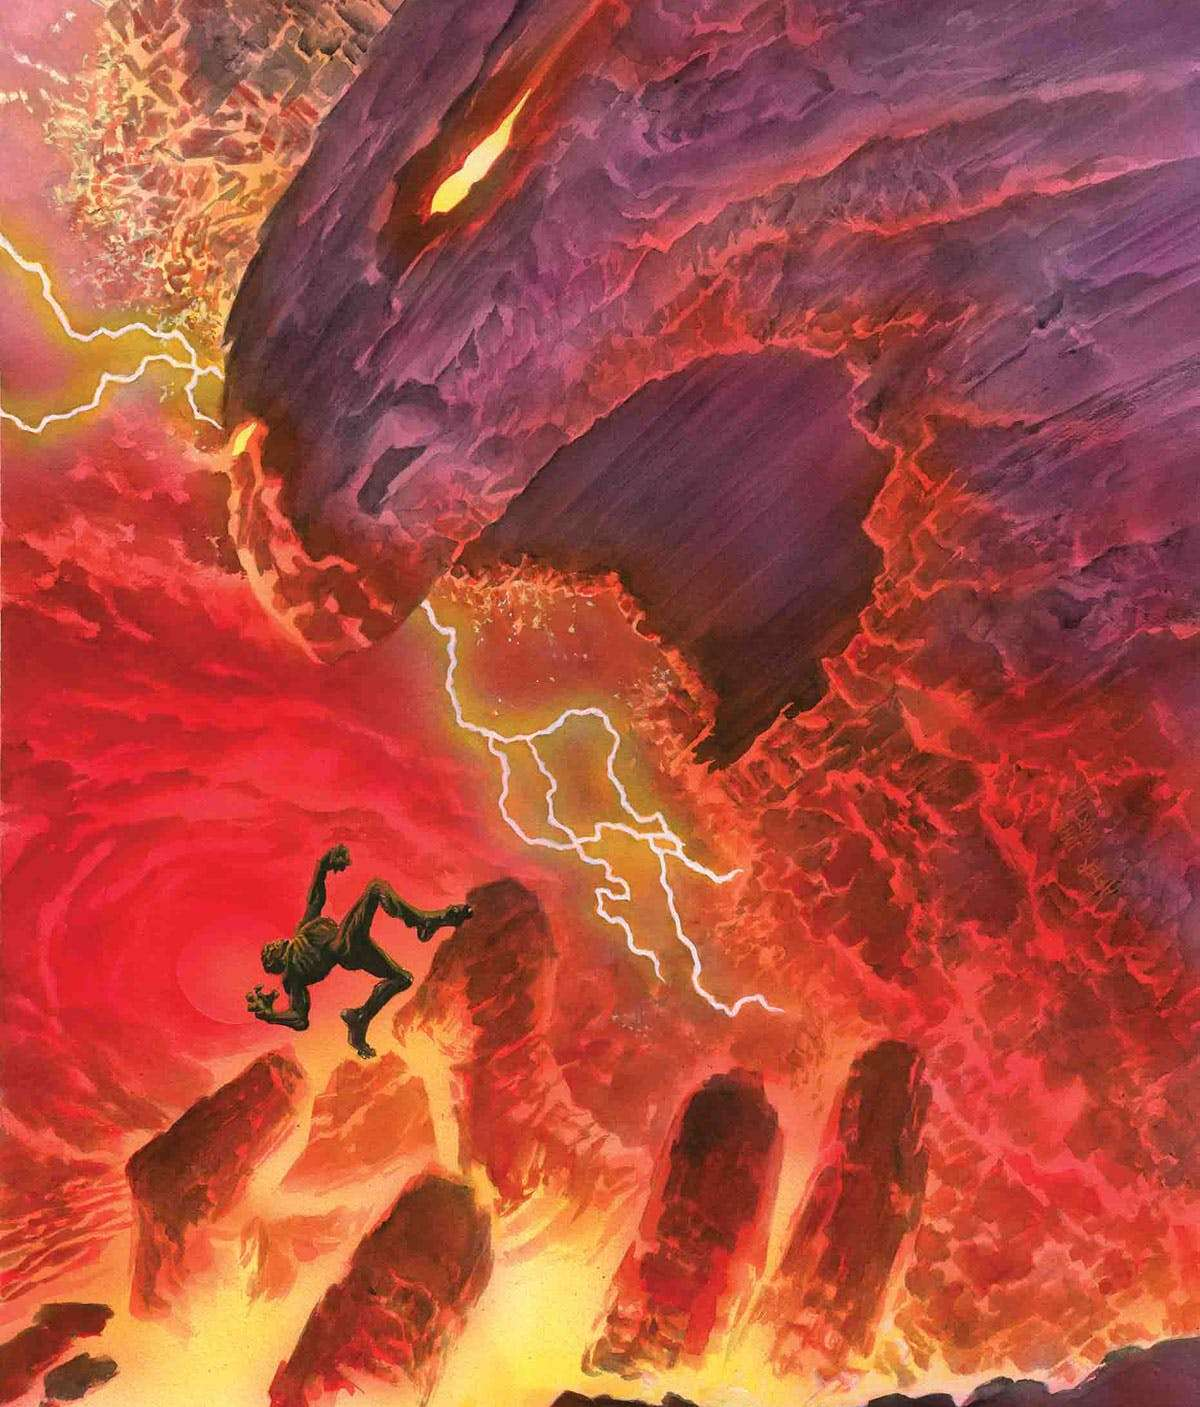 Immortal Hulk #12 Review: The One Below All!